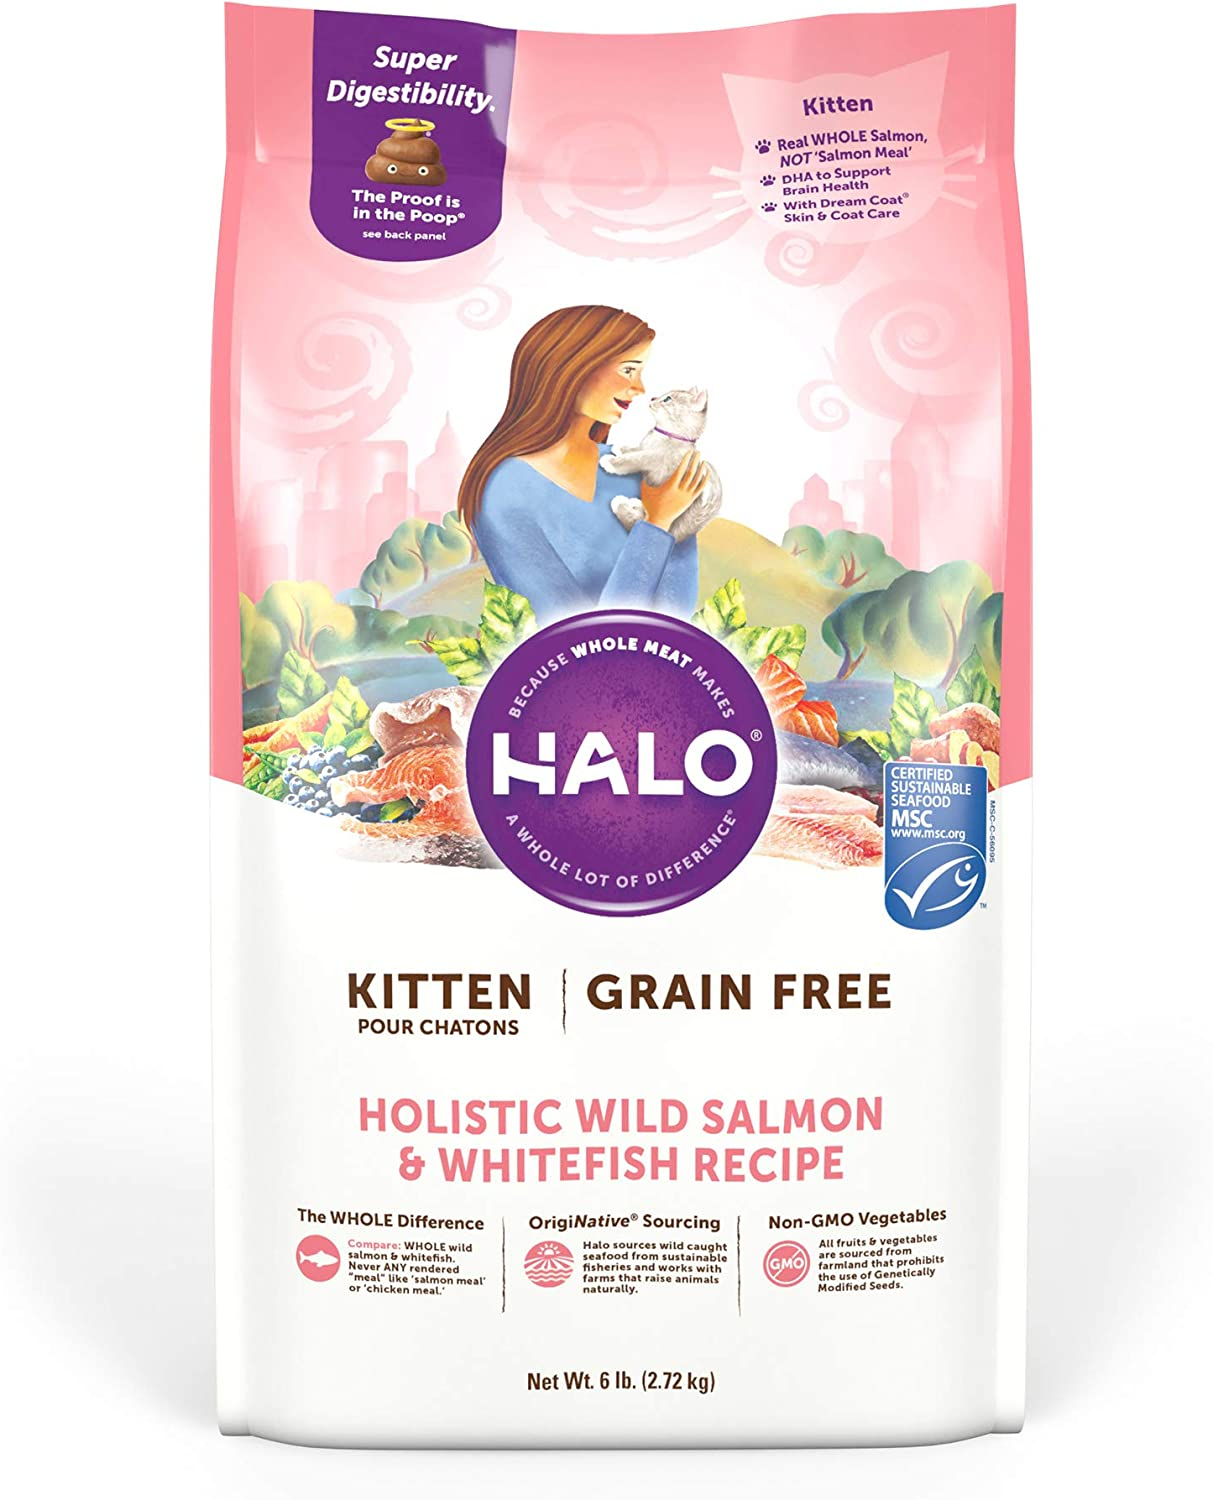 Halo Grain Free Natural Dry Cat Food, Kitten Recipe